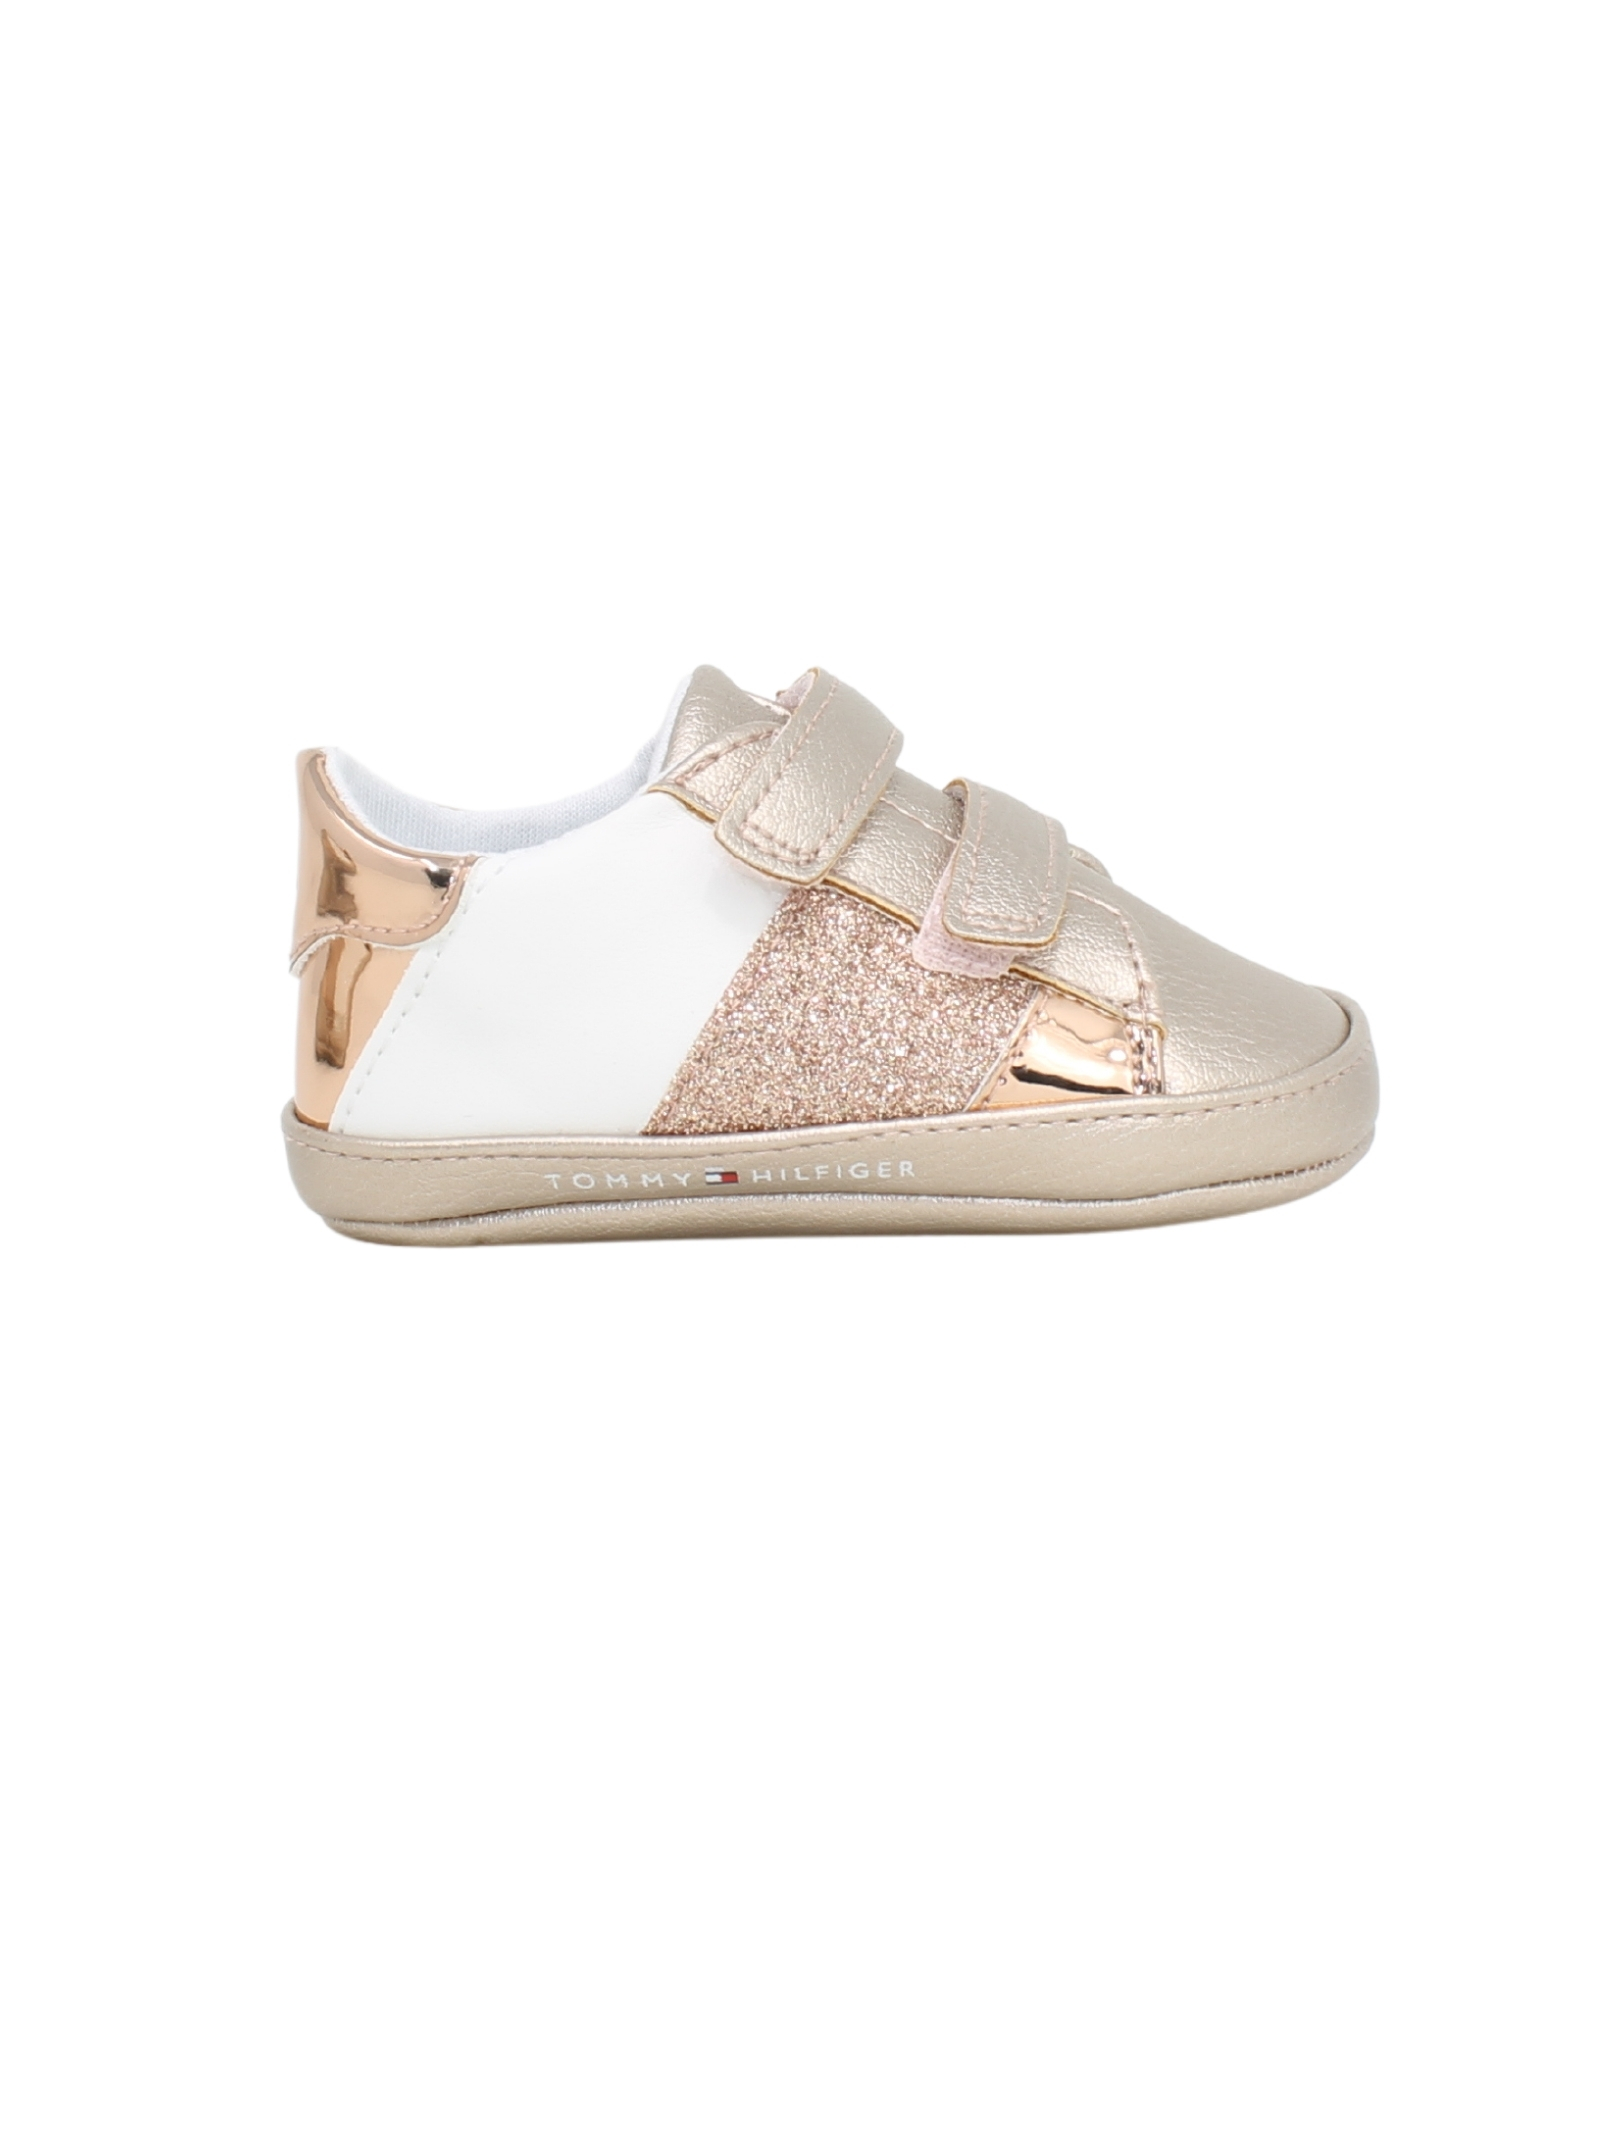 Shoes with glitter for baby girl TOMMY HILFIGER KIDS | Shoes | T0A4311360268A081ROSA